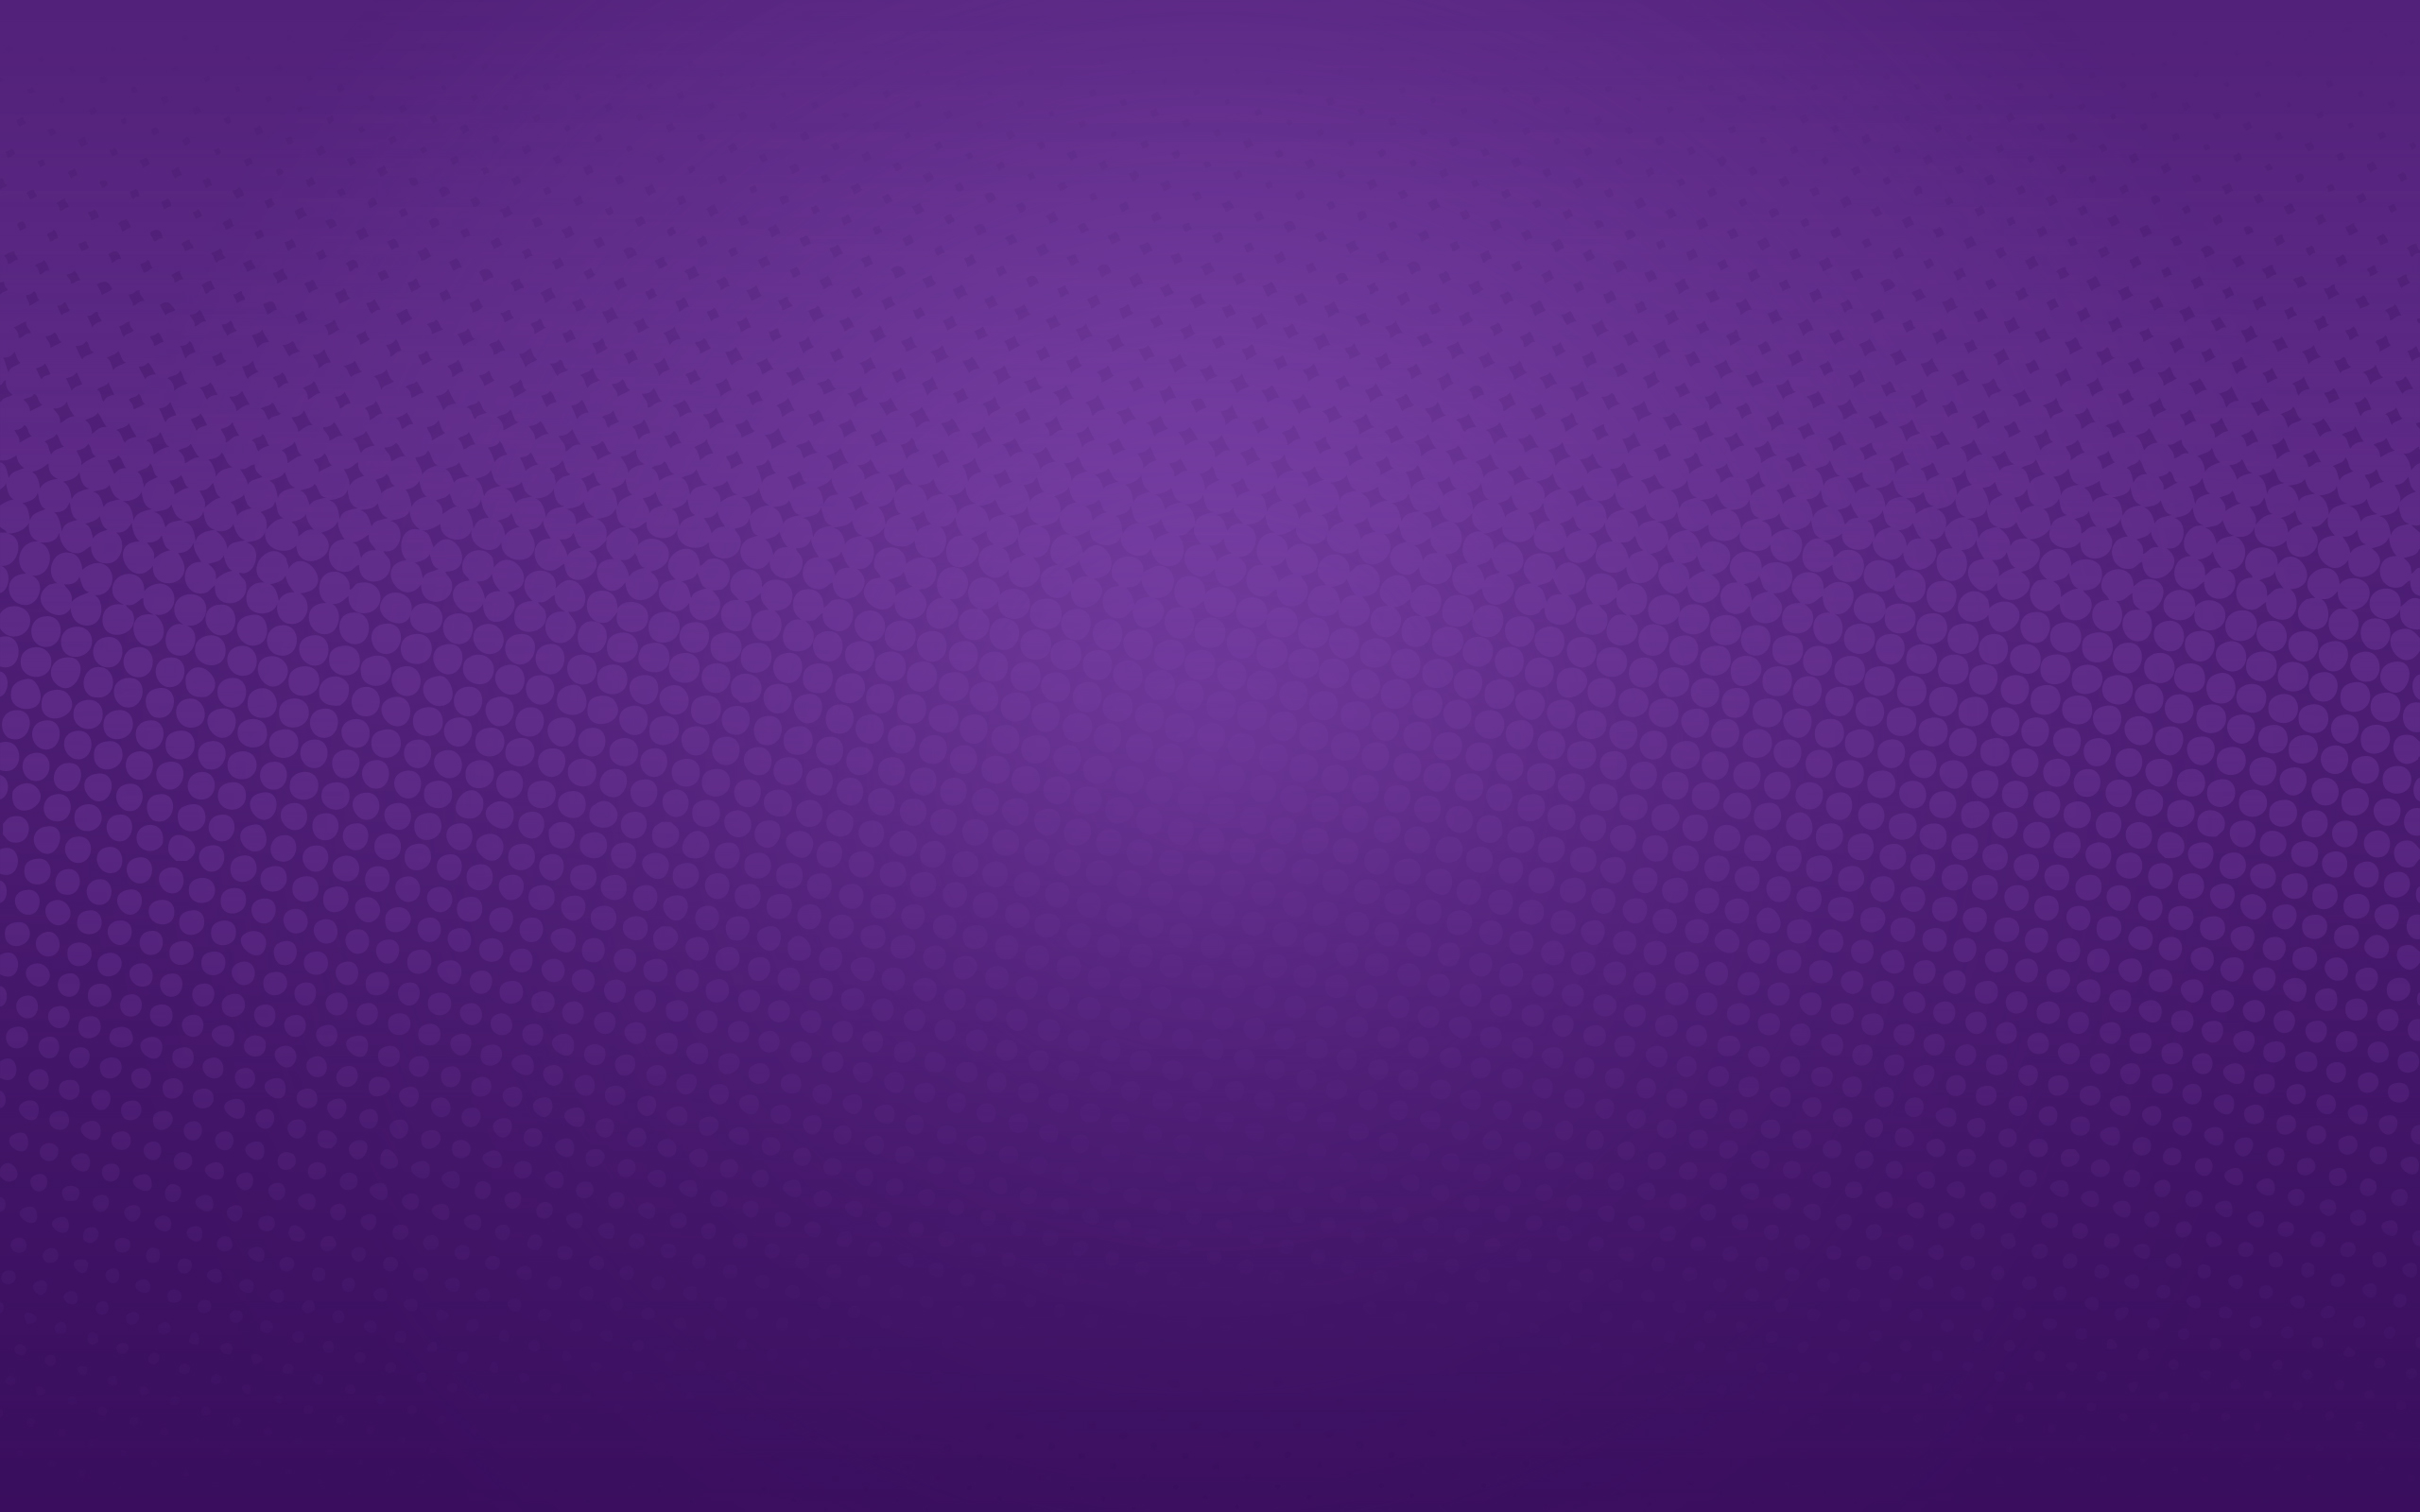 Purple wallpaper 5